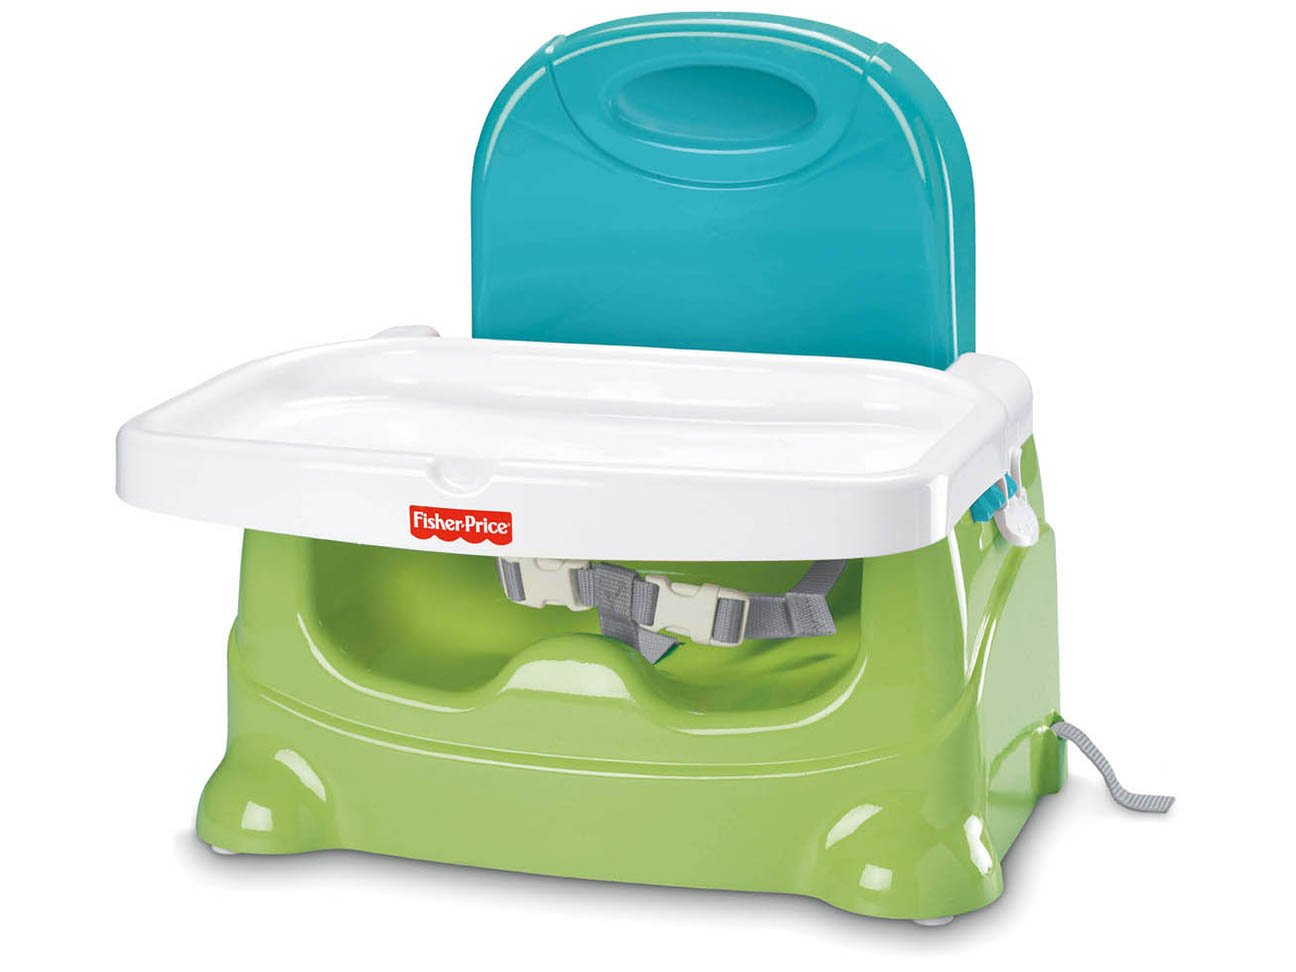 Fisher-Price Healthy Care Booster Seat, Green/Blue , New, Free Shipping | eBay